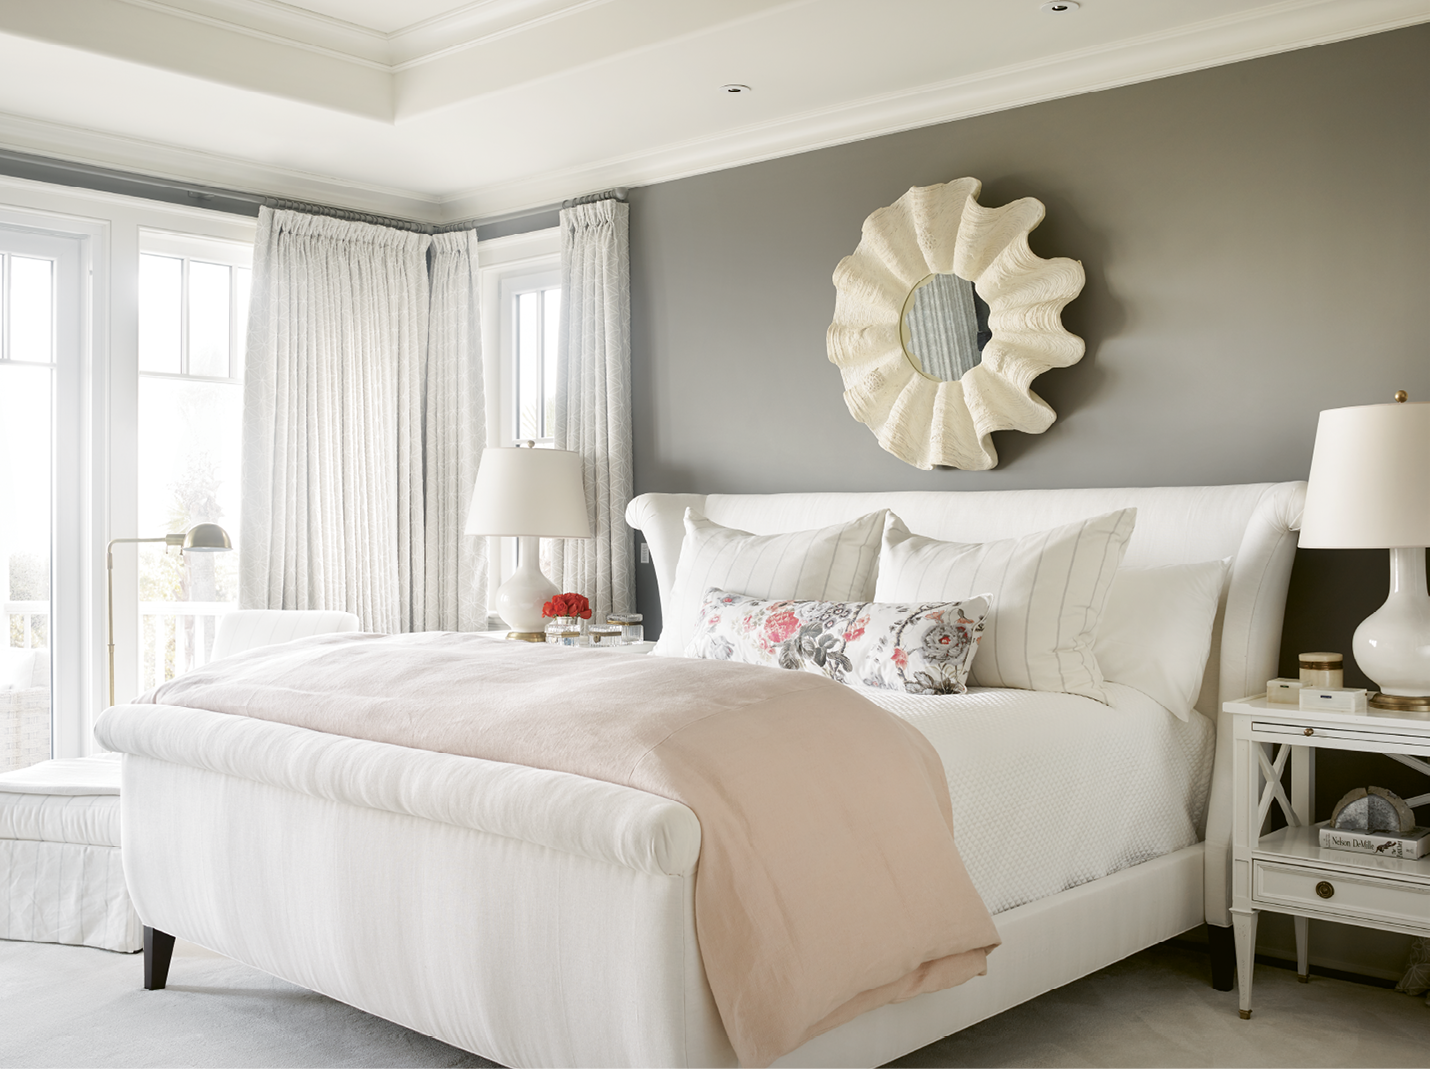 """In the master bedroom, walls covered in Farrow and Ball's """"Mole's Breath"""" and drapes made with light grey Shumacher fabric ground the room's blush accents. The lamps are from Circa Lighting."""